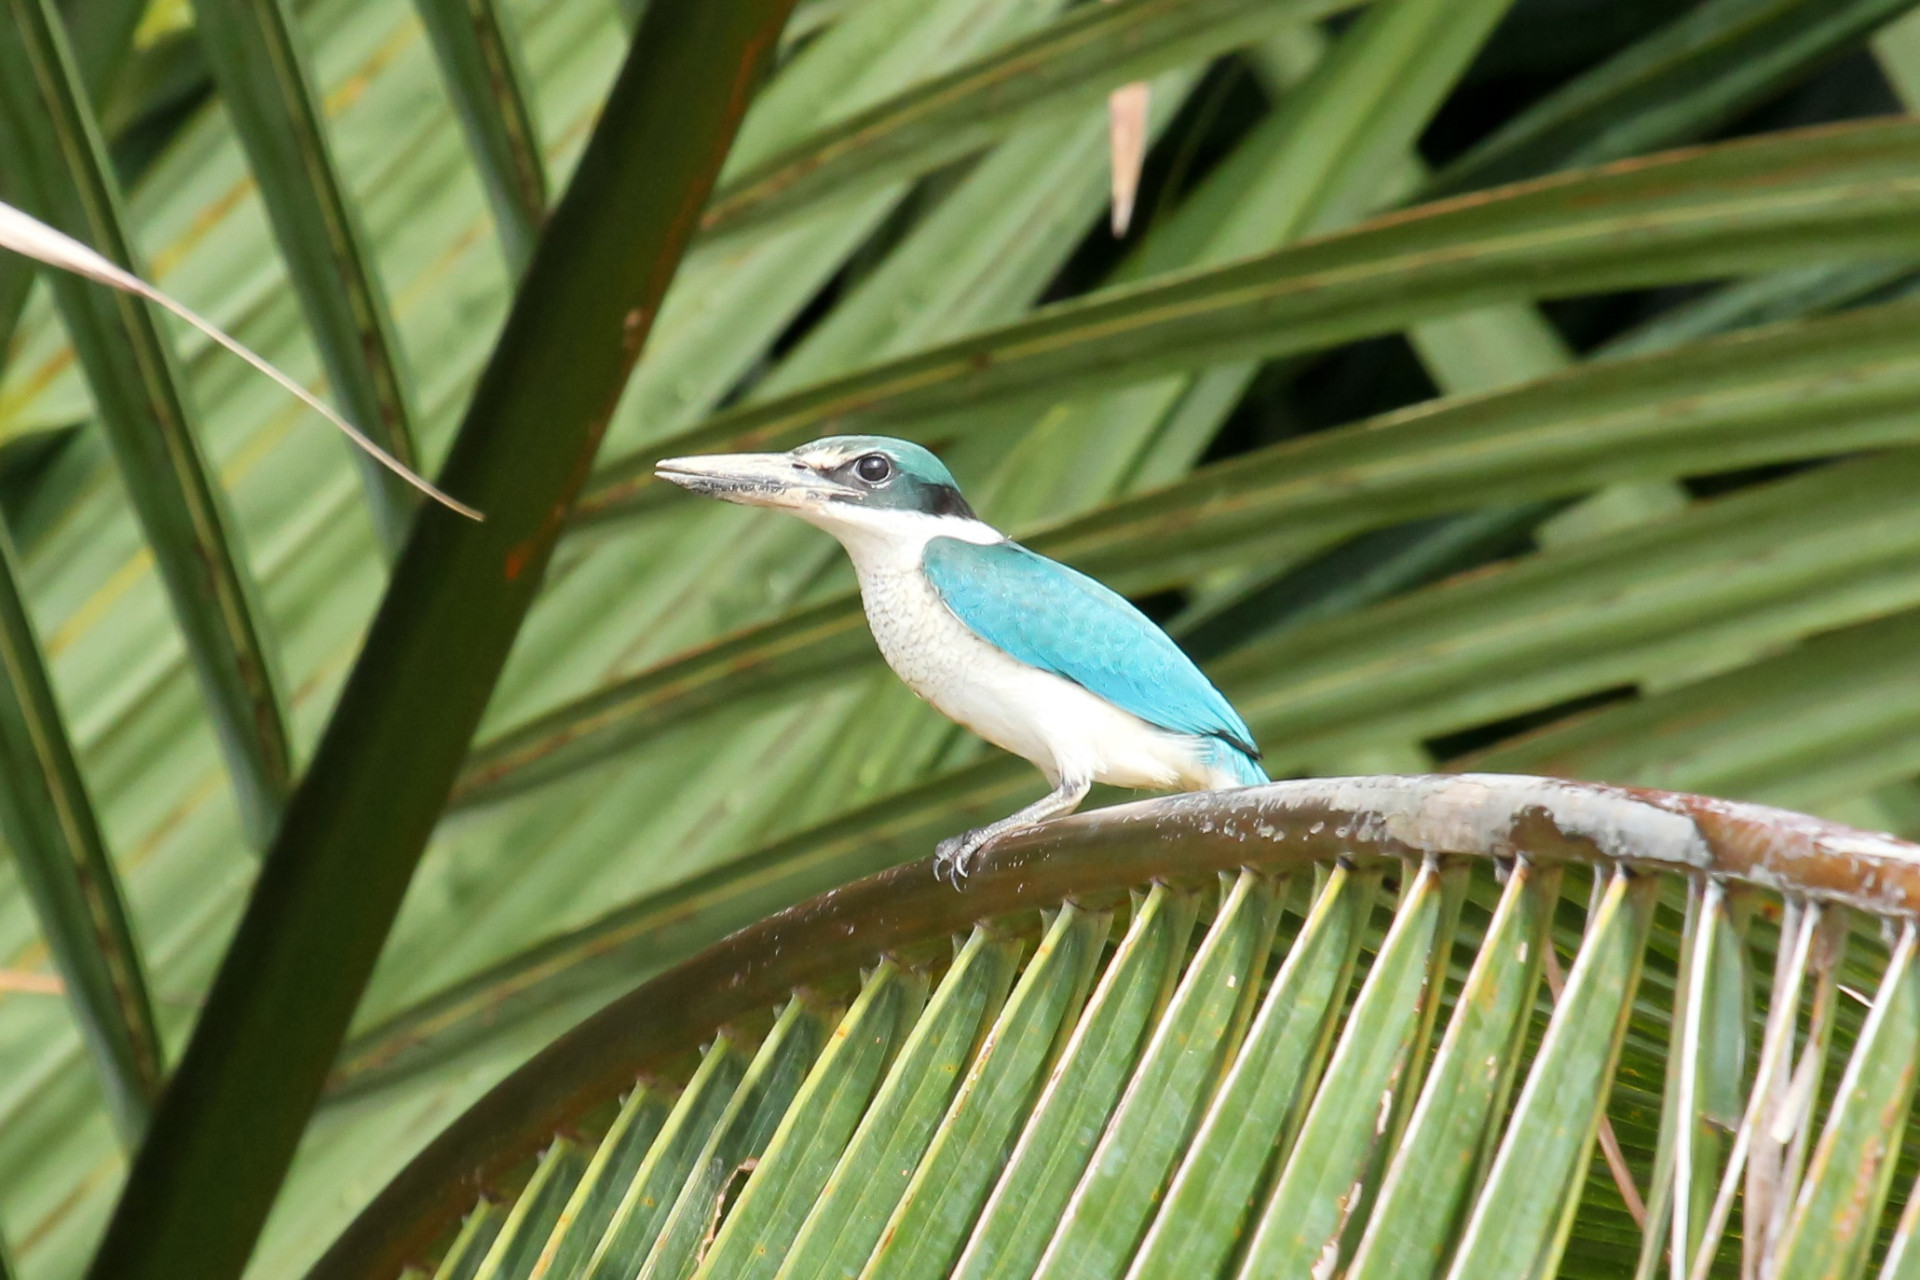 Collared Kingfisher, Kinabatangan, Borneo, Nov. 2012